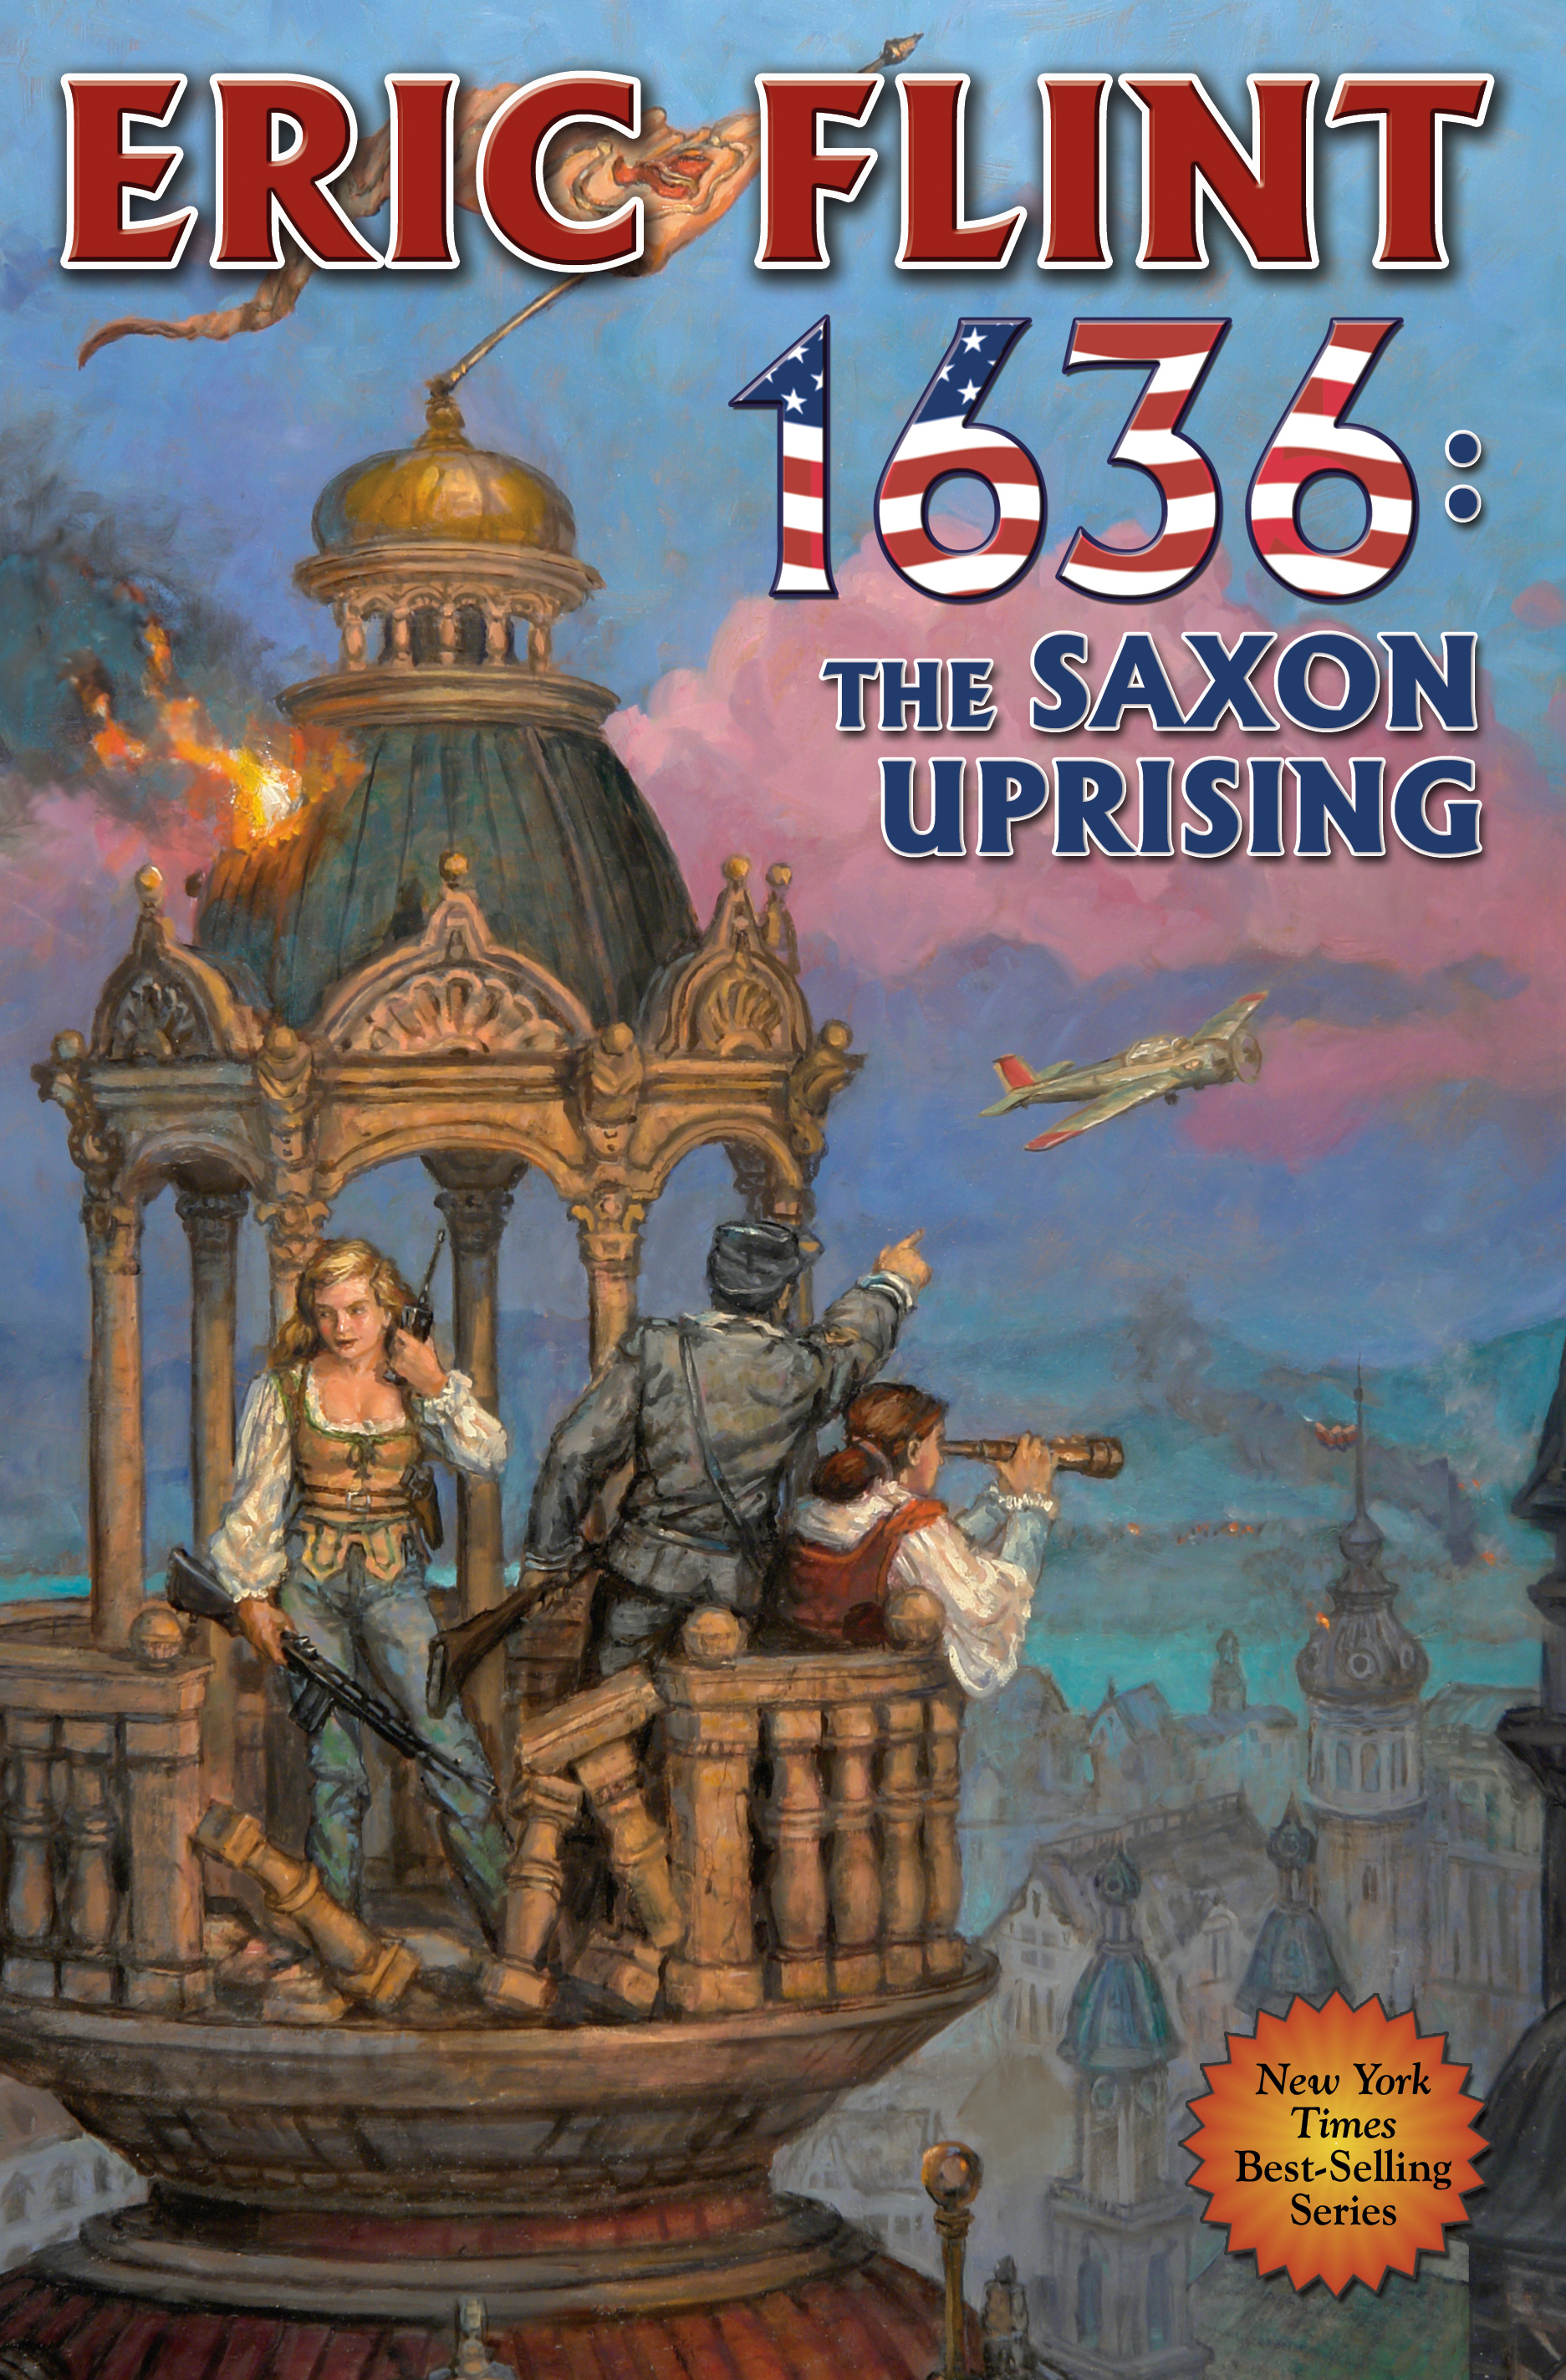 Book Cover Image (jpg): 1636: The Saxon Uprising